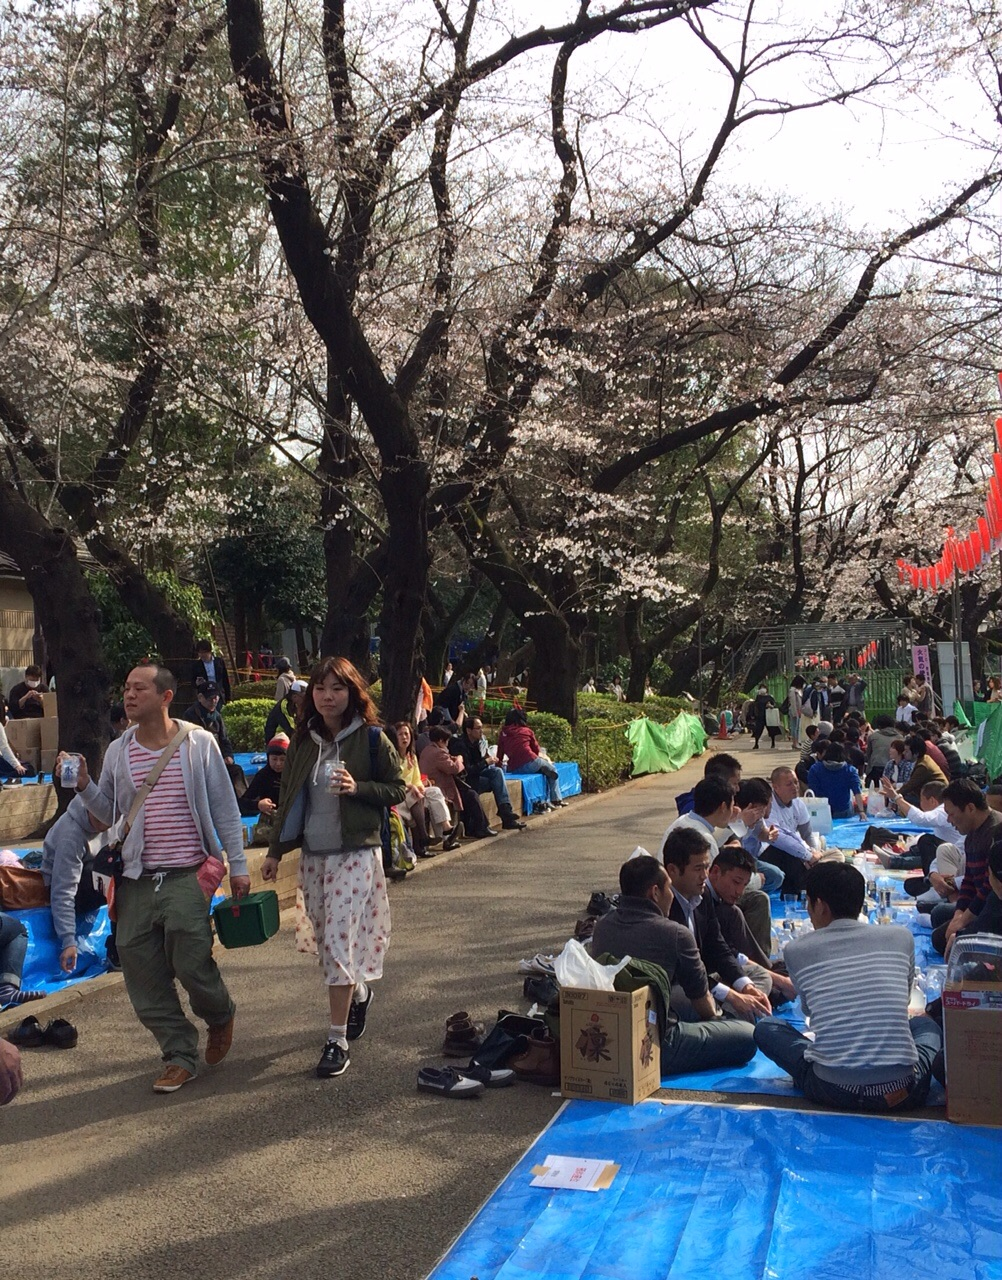 Getting in the Hanami mood - looks like we may be a week early for the fullness of the blossom viewing season.